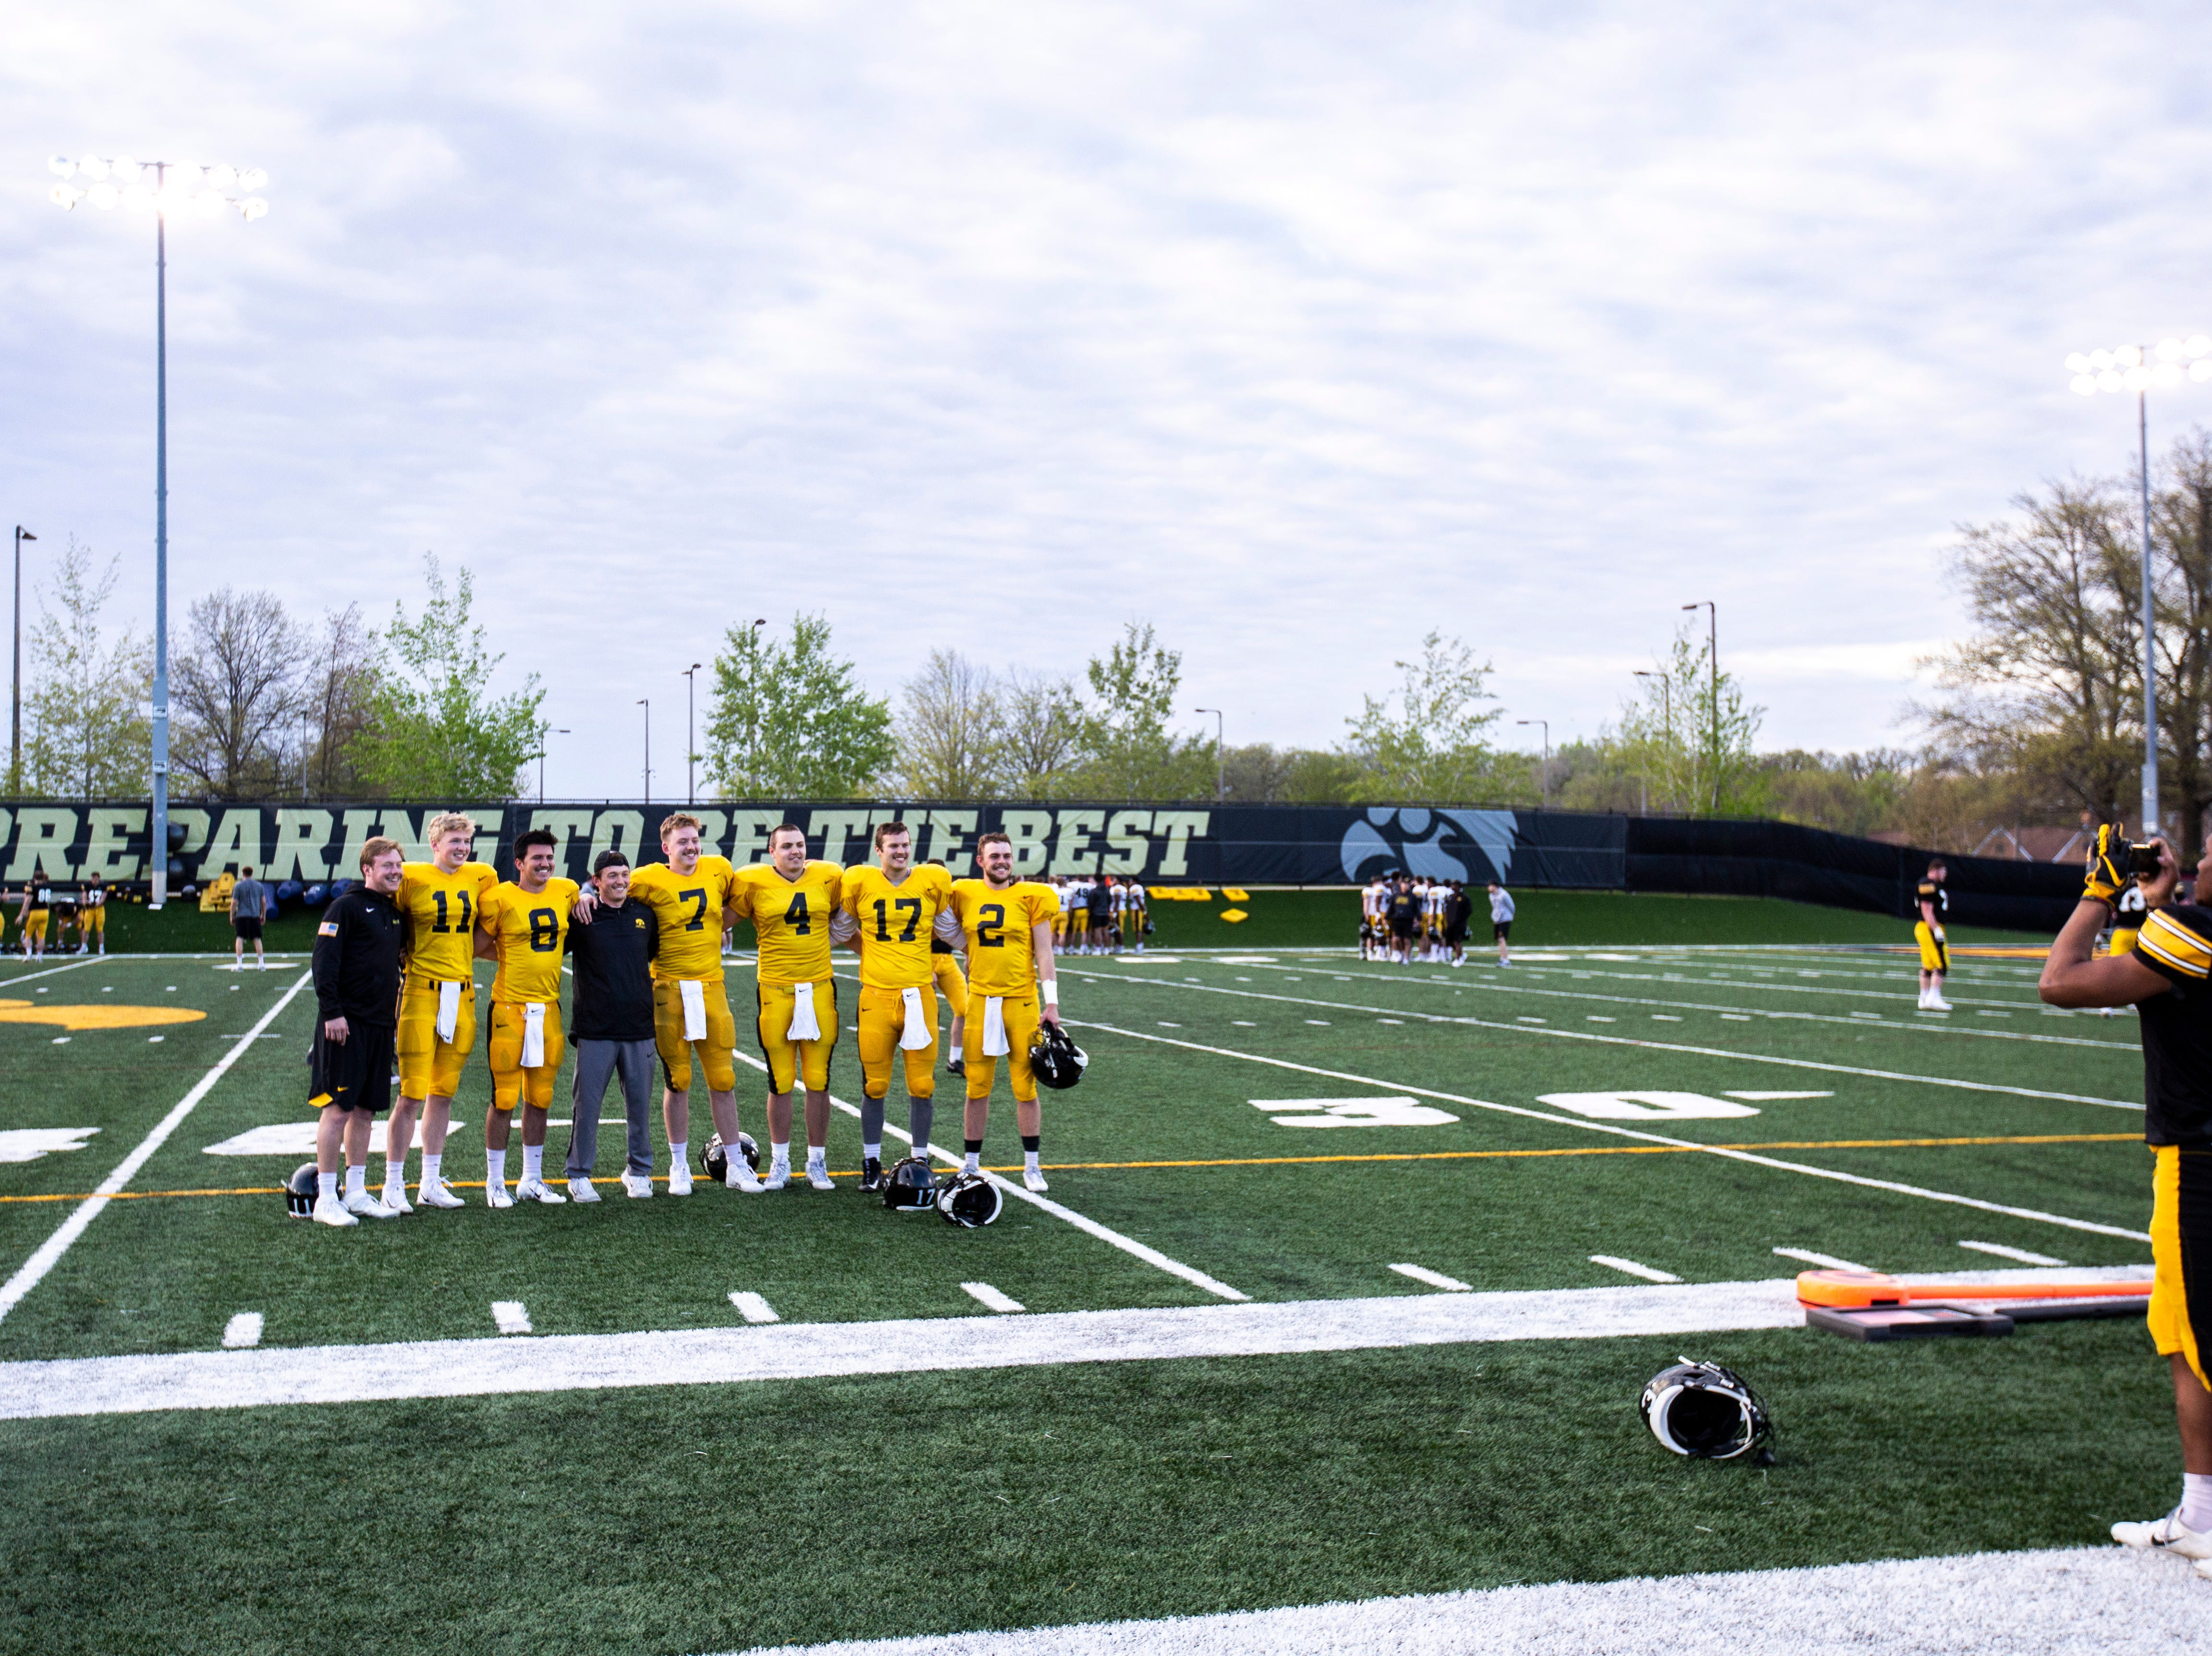 Iowa wide receiver Tyrone Tracy Jr. (3) takes a photo of the quarterbacks with freshly shaven mustaches after the final spring football practice, Friday, April 26, 2019, at the University of Iowa outdoor practice facility in Iowa City, Iowa.